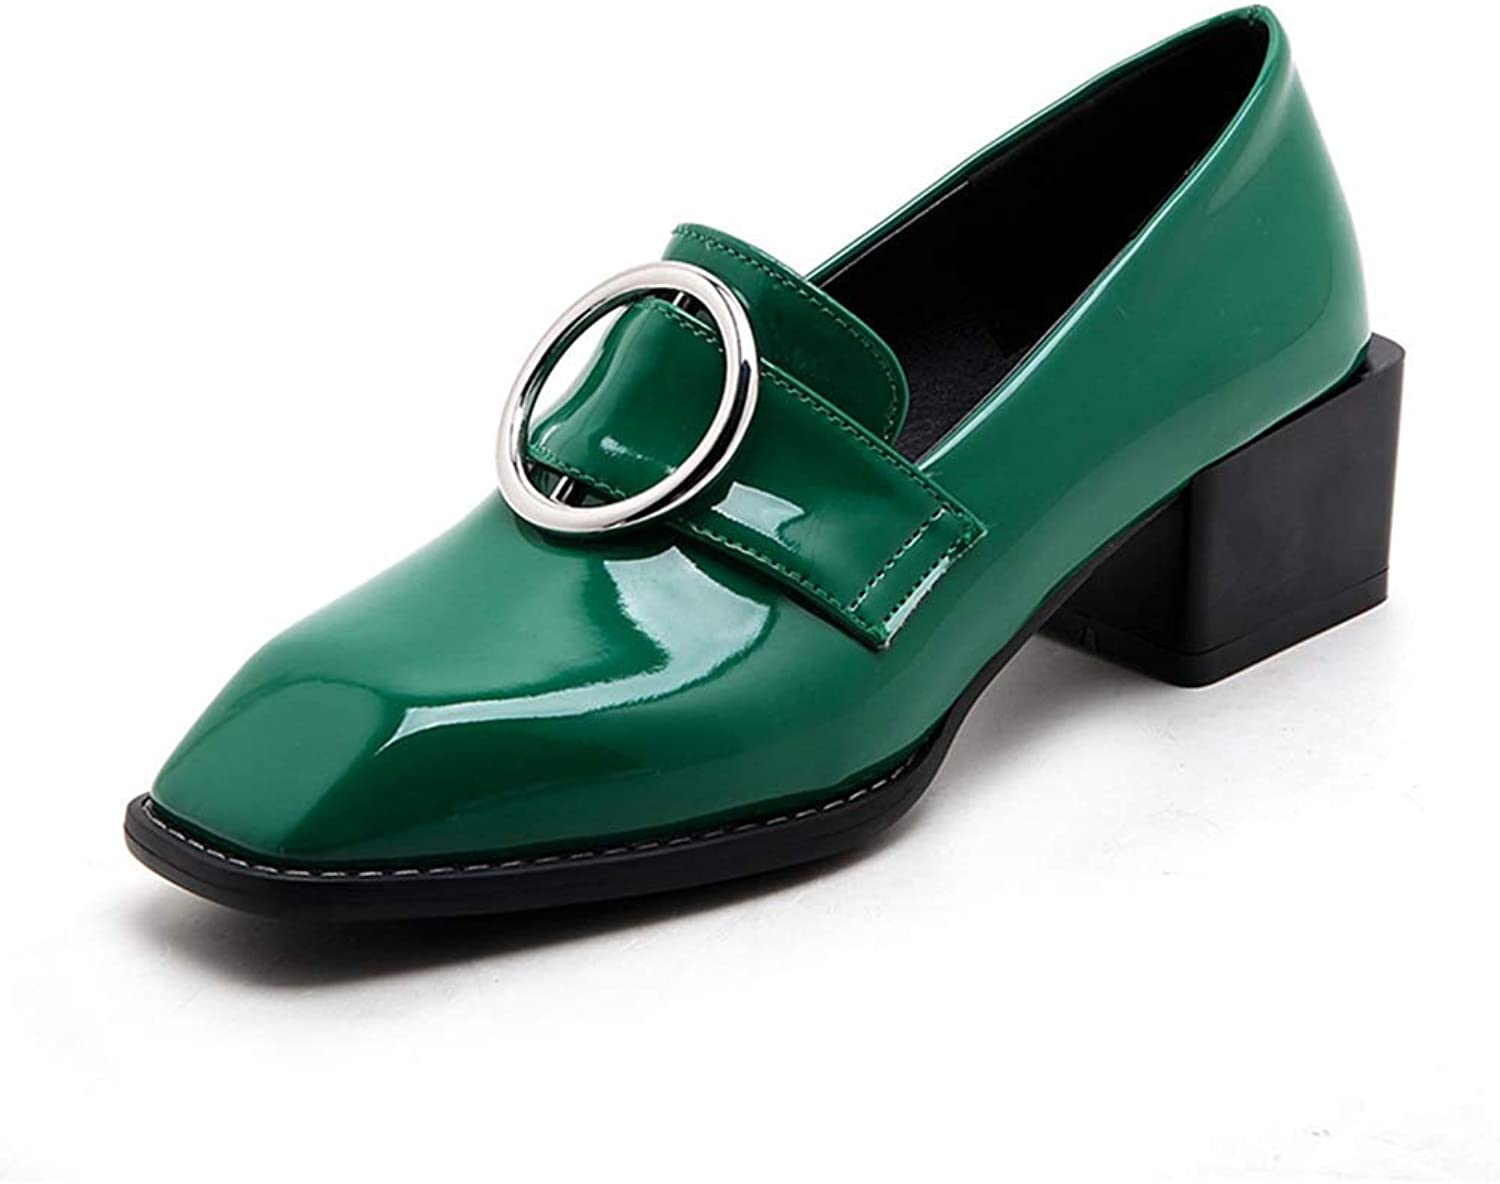 Elsa Wilcox Women Patent Leather Slip On Mid Heel Dress Oxfords Loafer Pumps Square Toe Buckle Oxford shoes